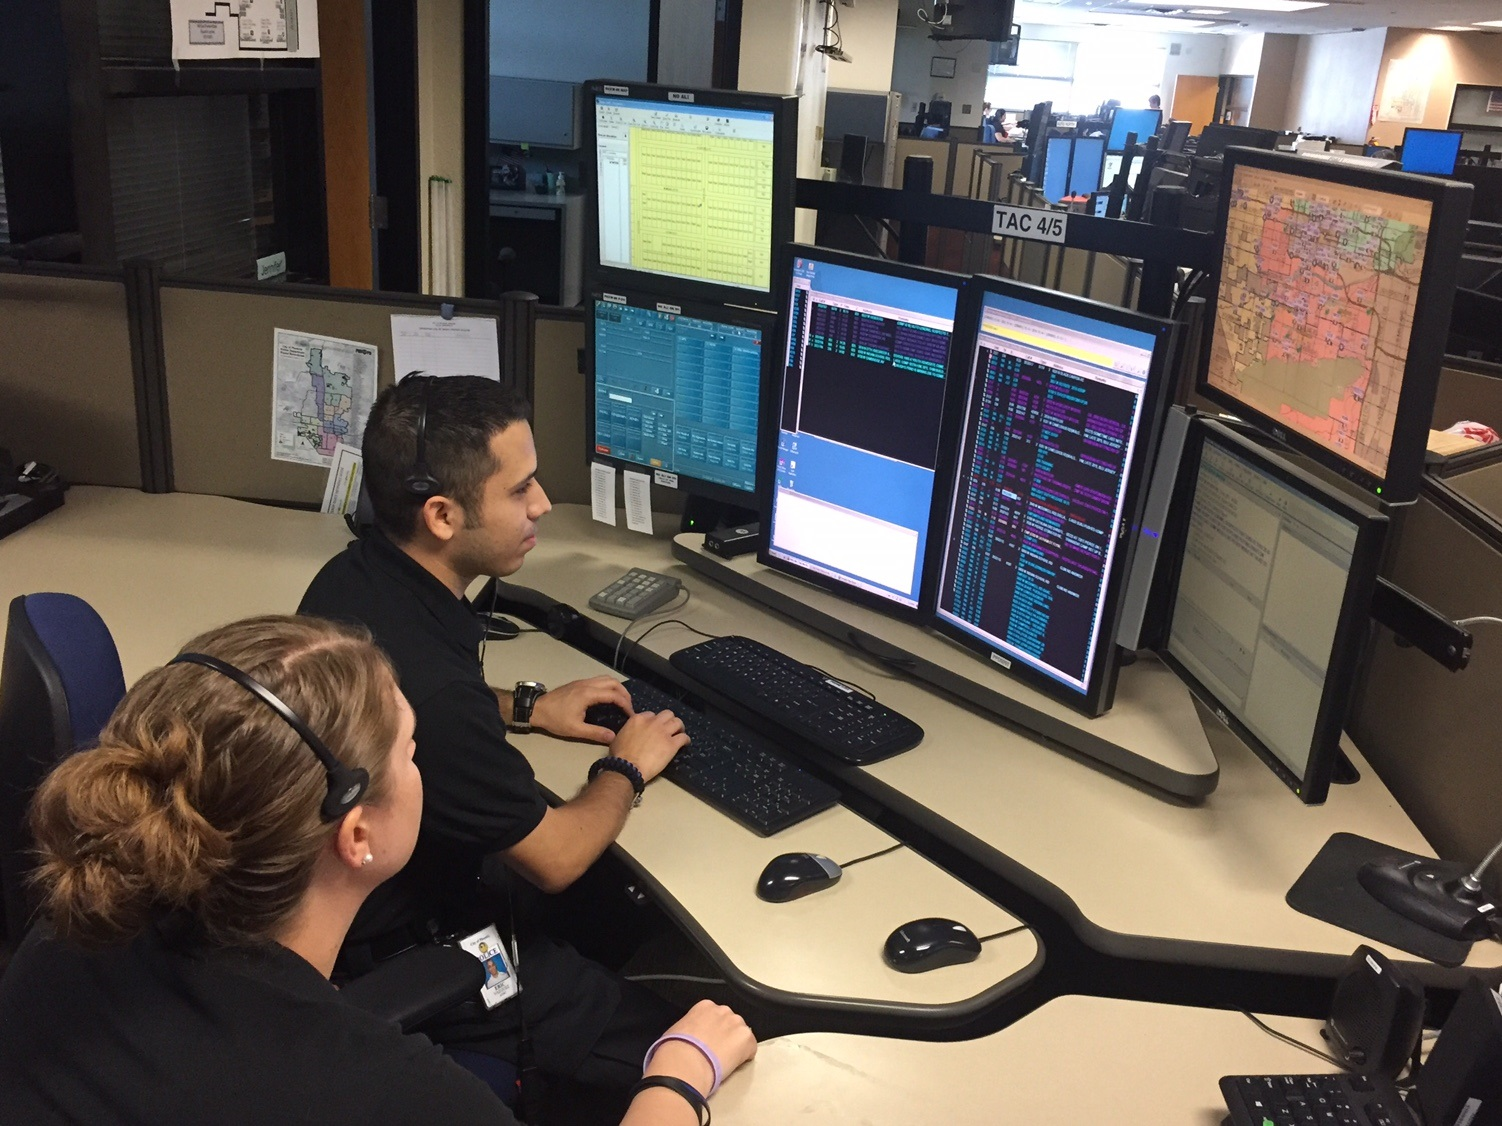 911 call center workers